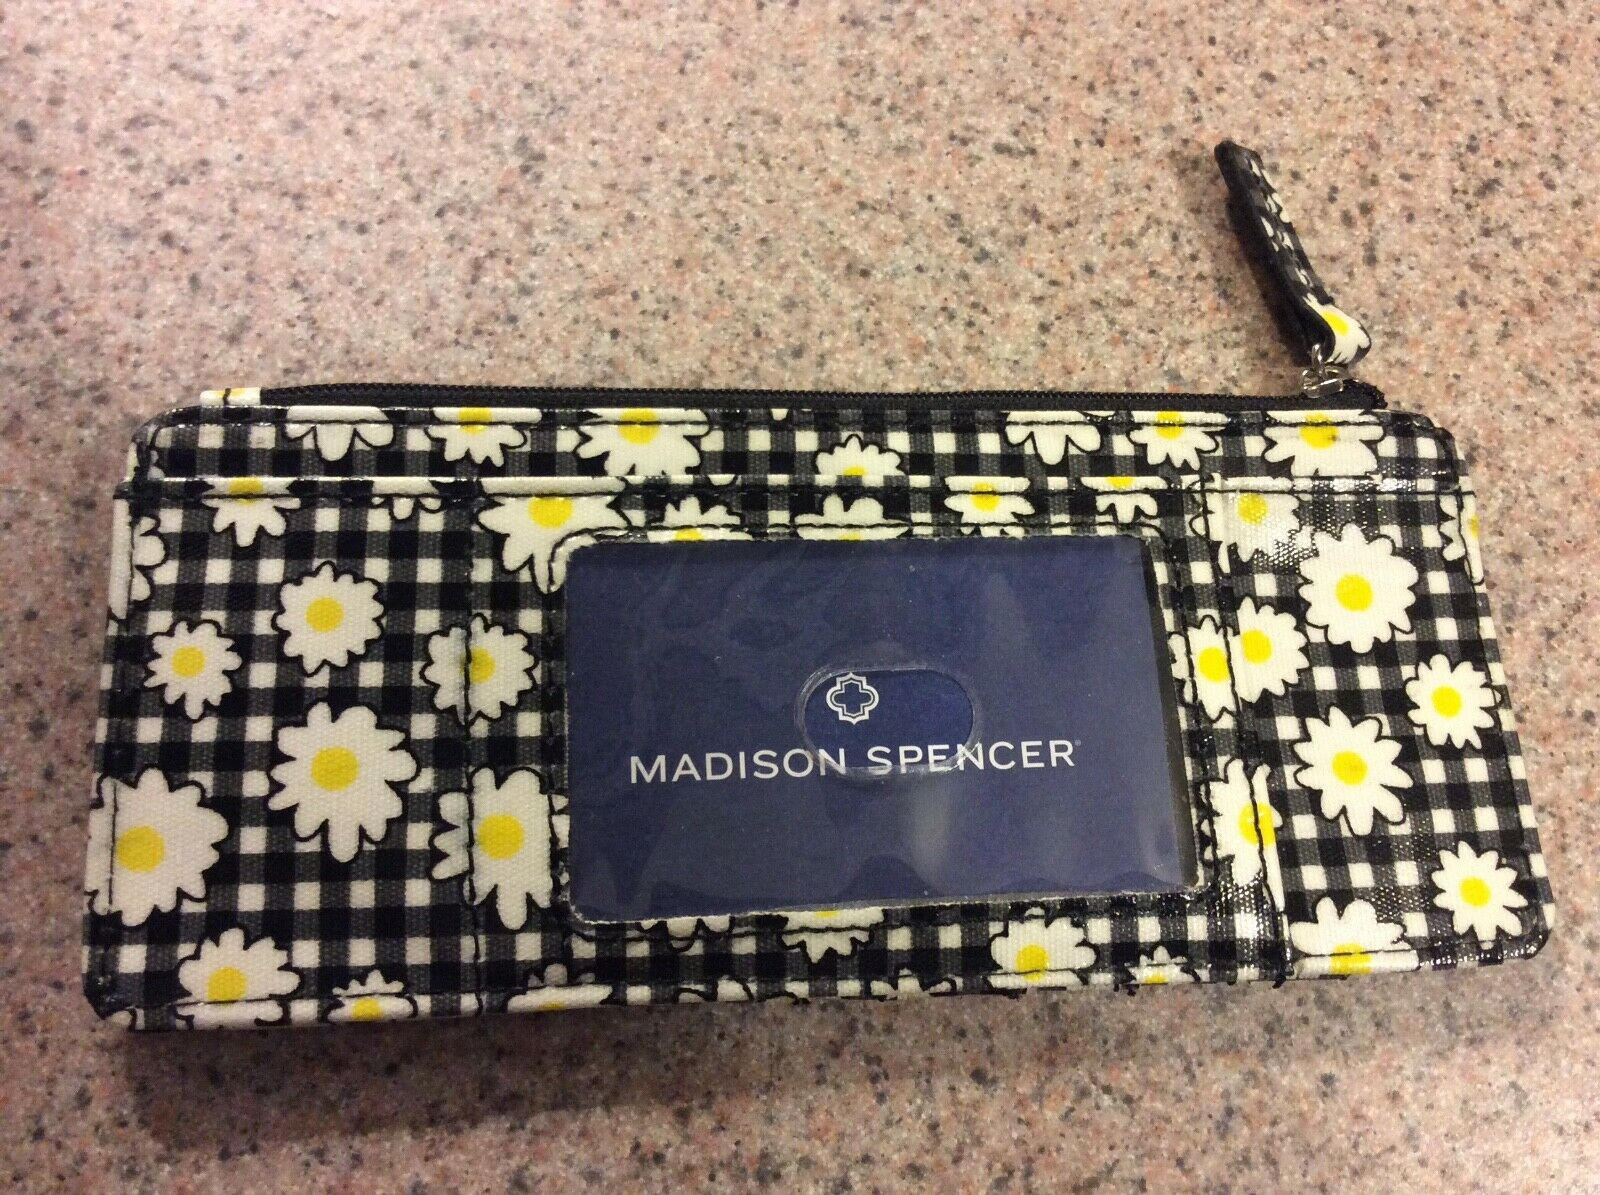 Madison Spencer - NWOT - Black and White Flower Print Daisies Card Case Wallet